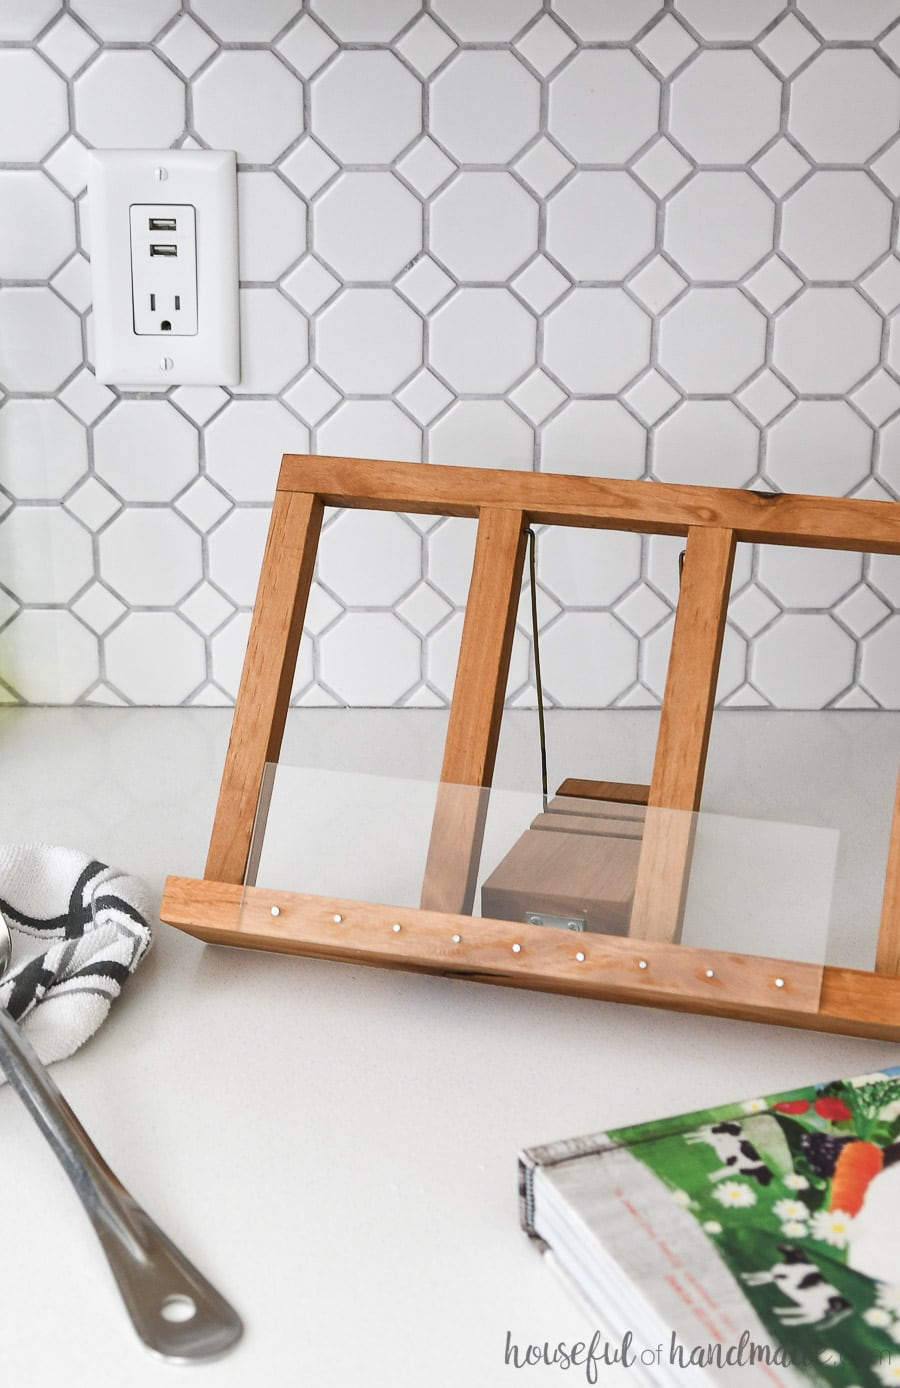 Easy to build cookbook stand can be leaned back as much as you want with the smart kickstand.